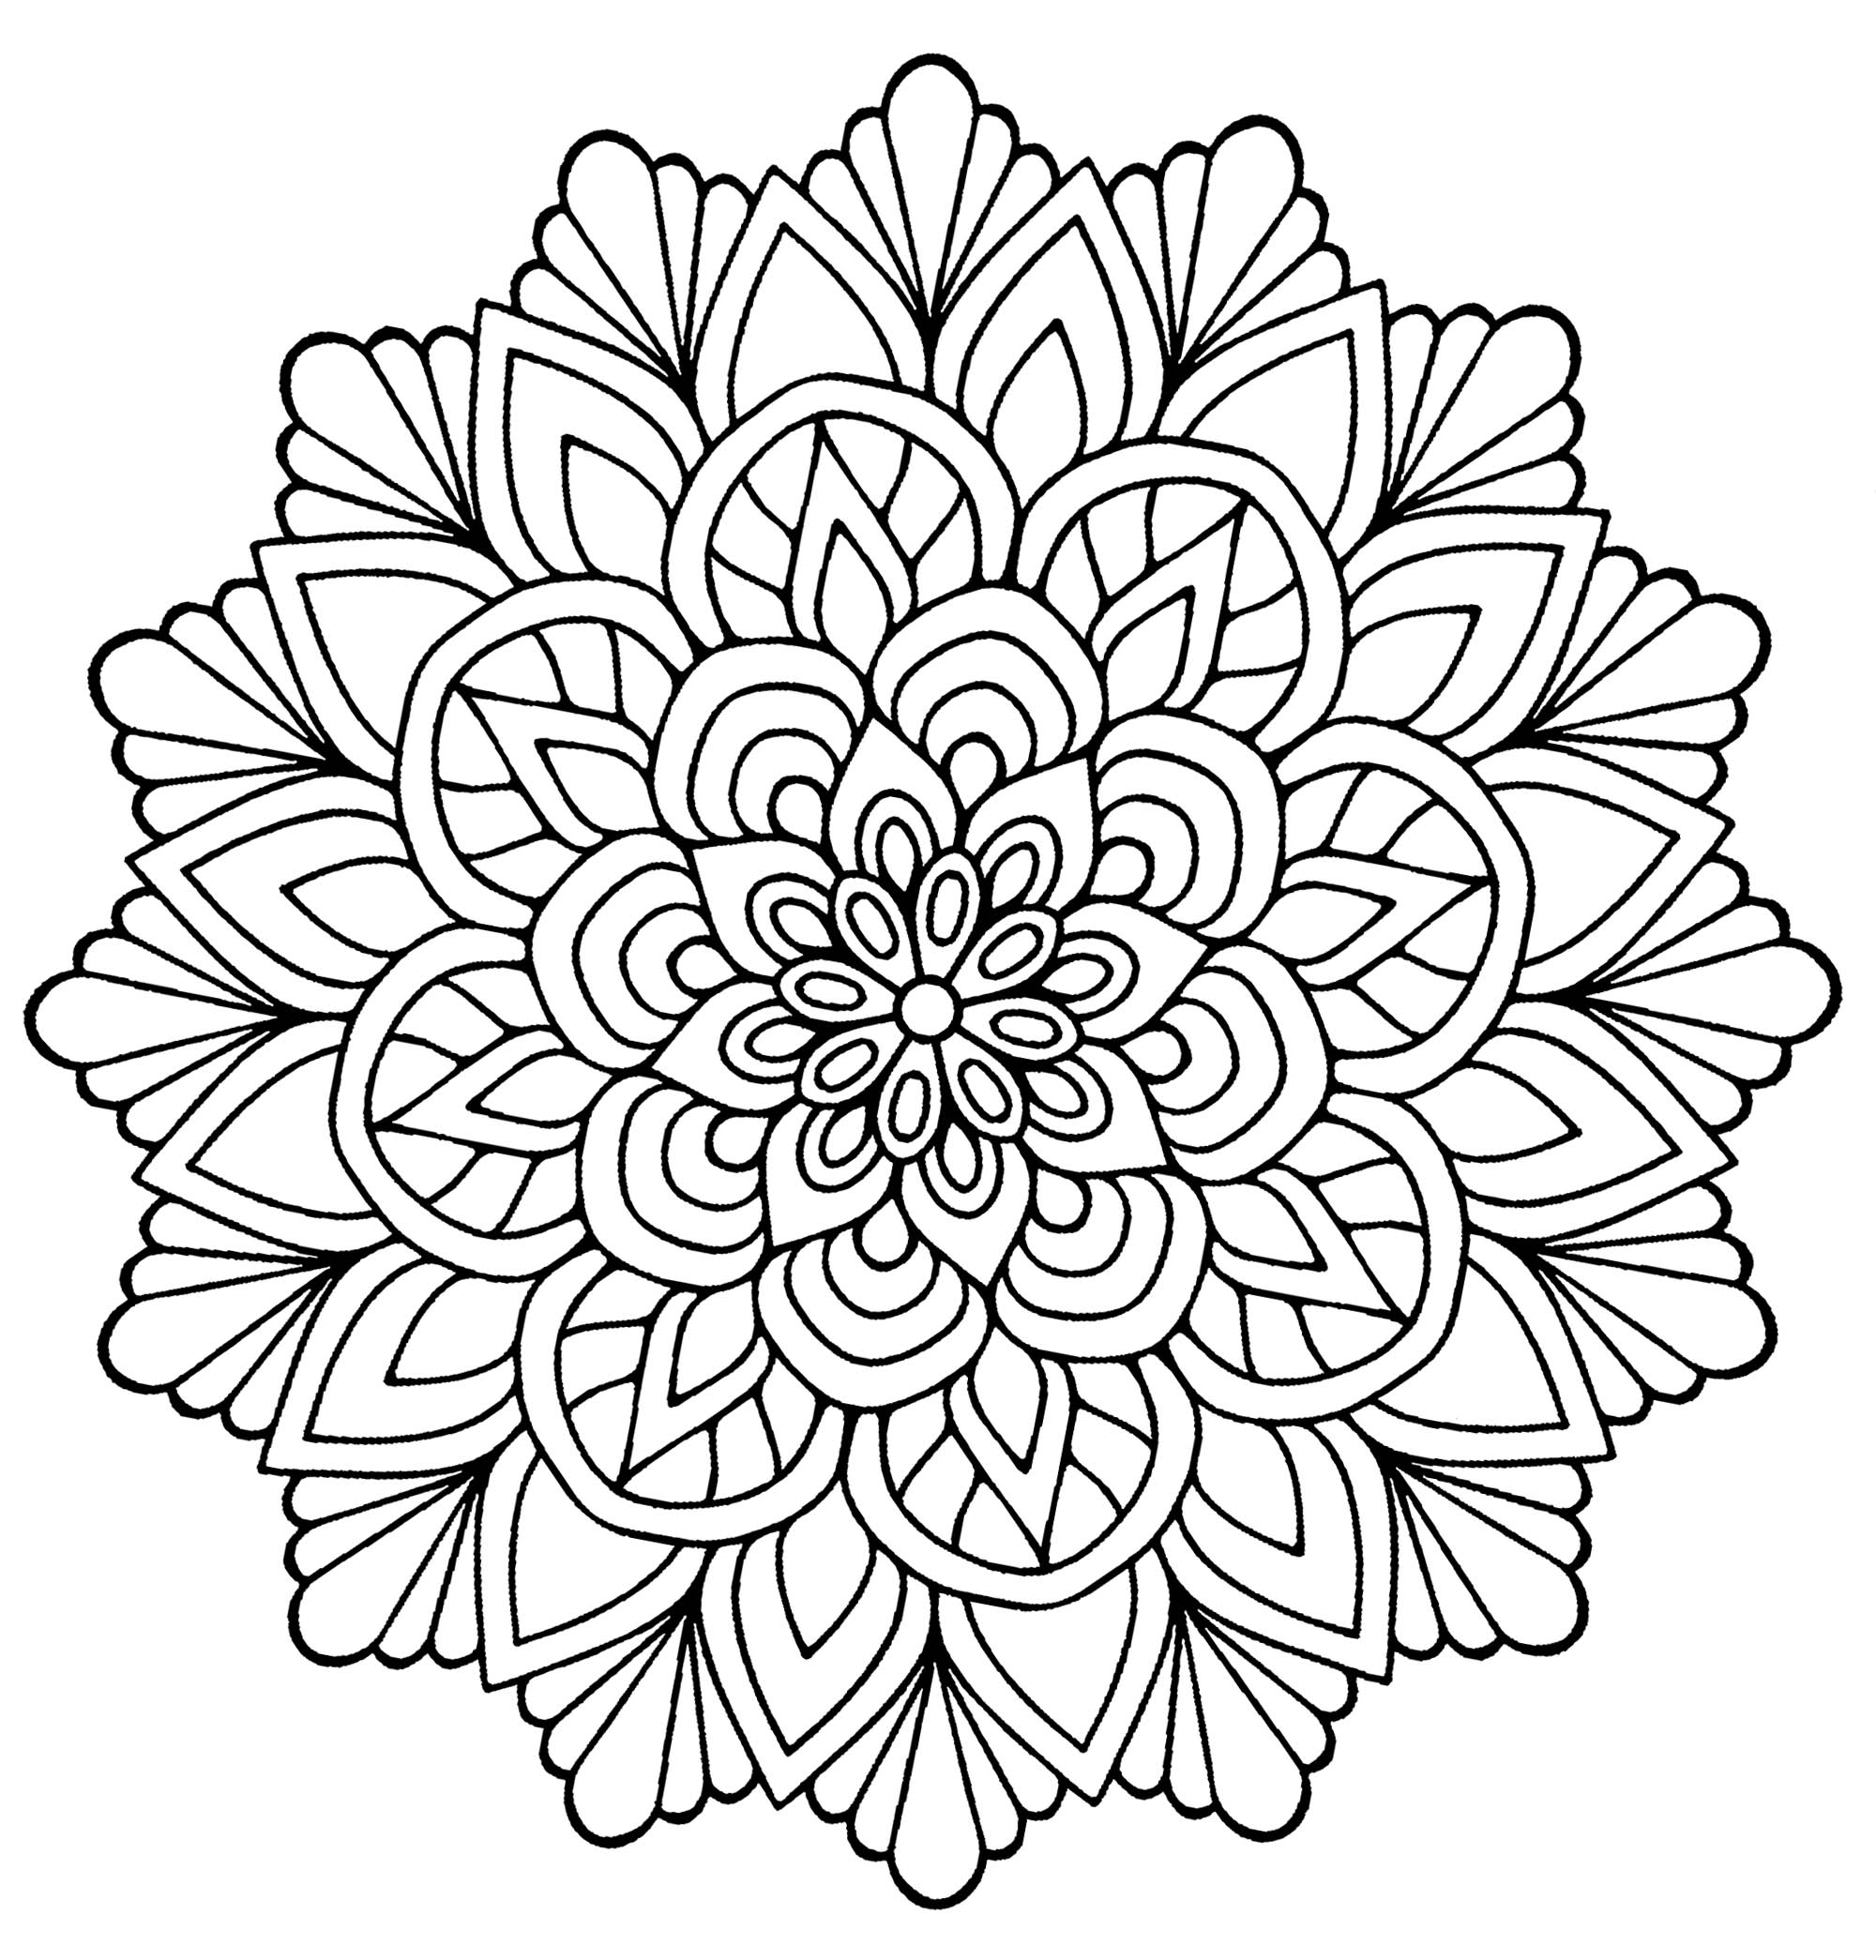 Cute Mandala : Flowers & Leaves